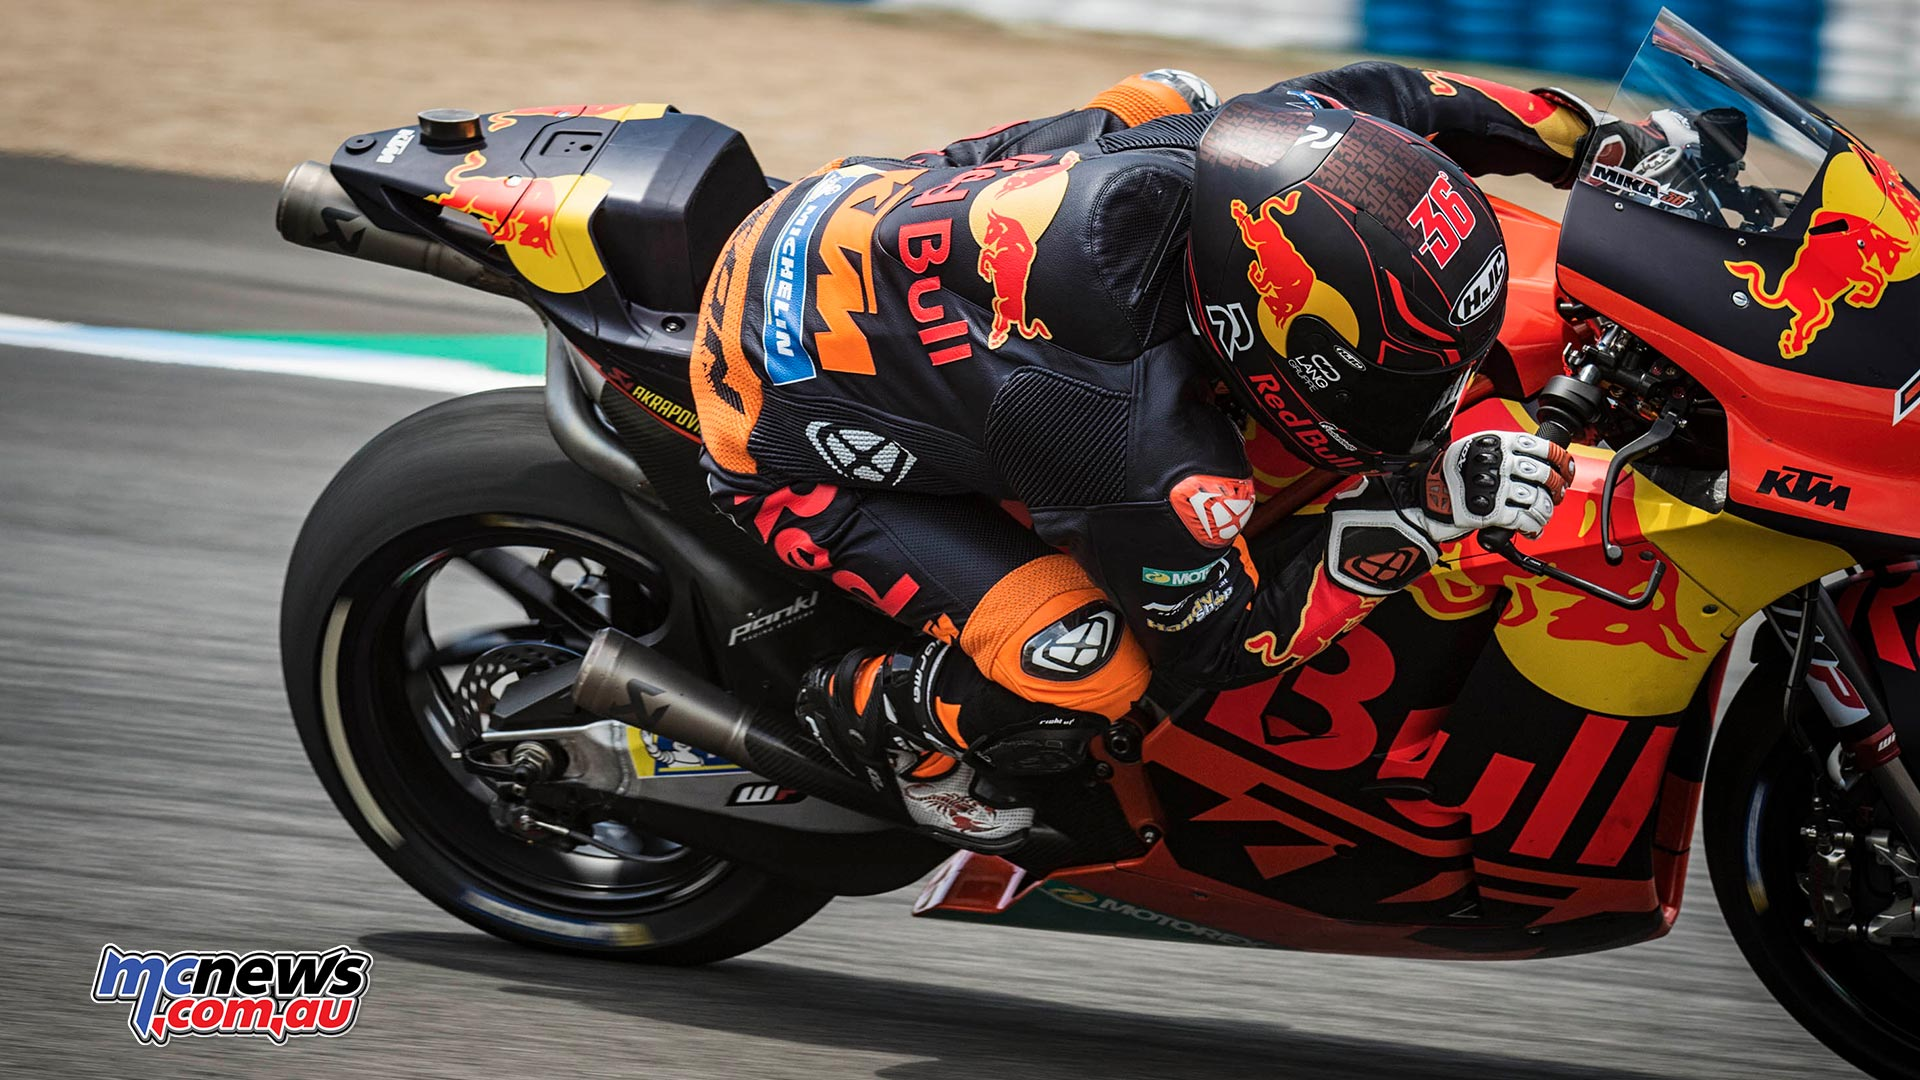 Ktm Test New Motogp Prototypes In Spain Motorcycle News Sport And Reviews